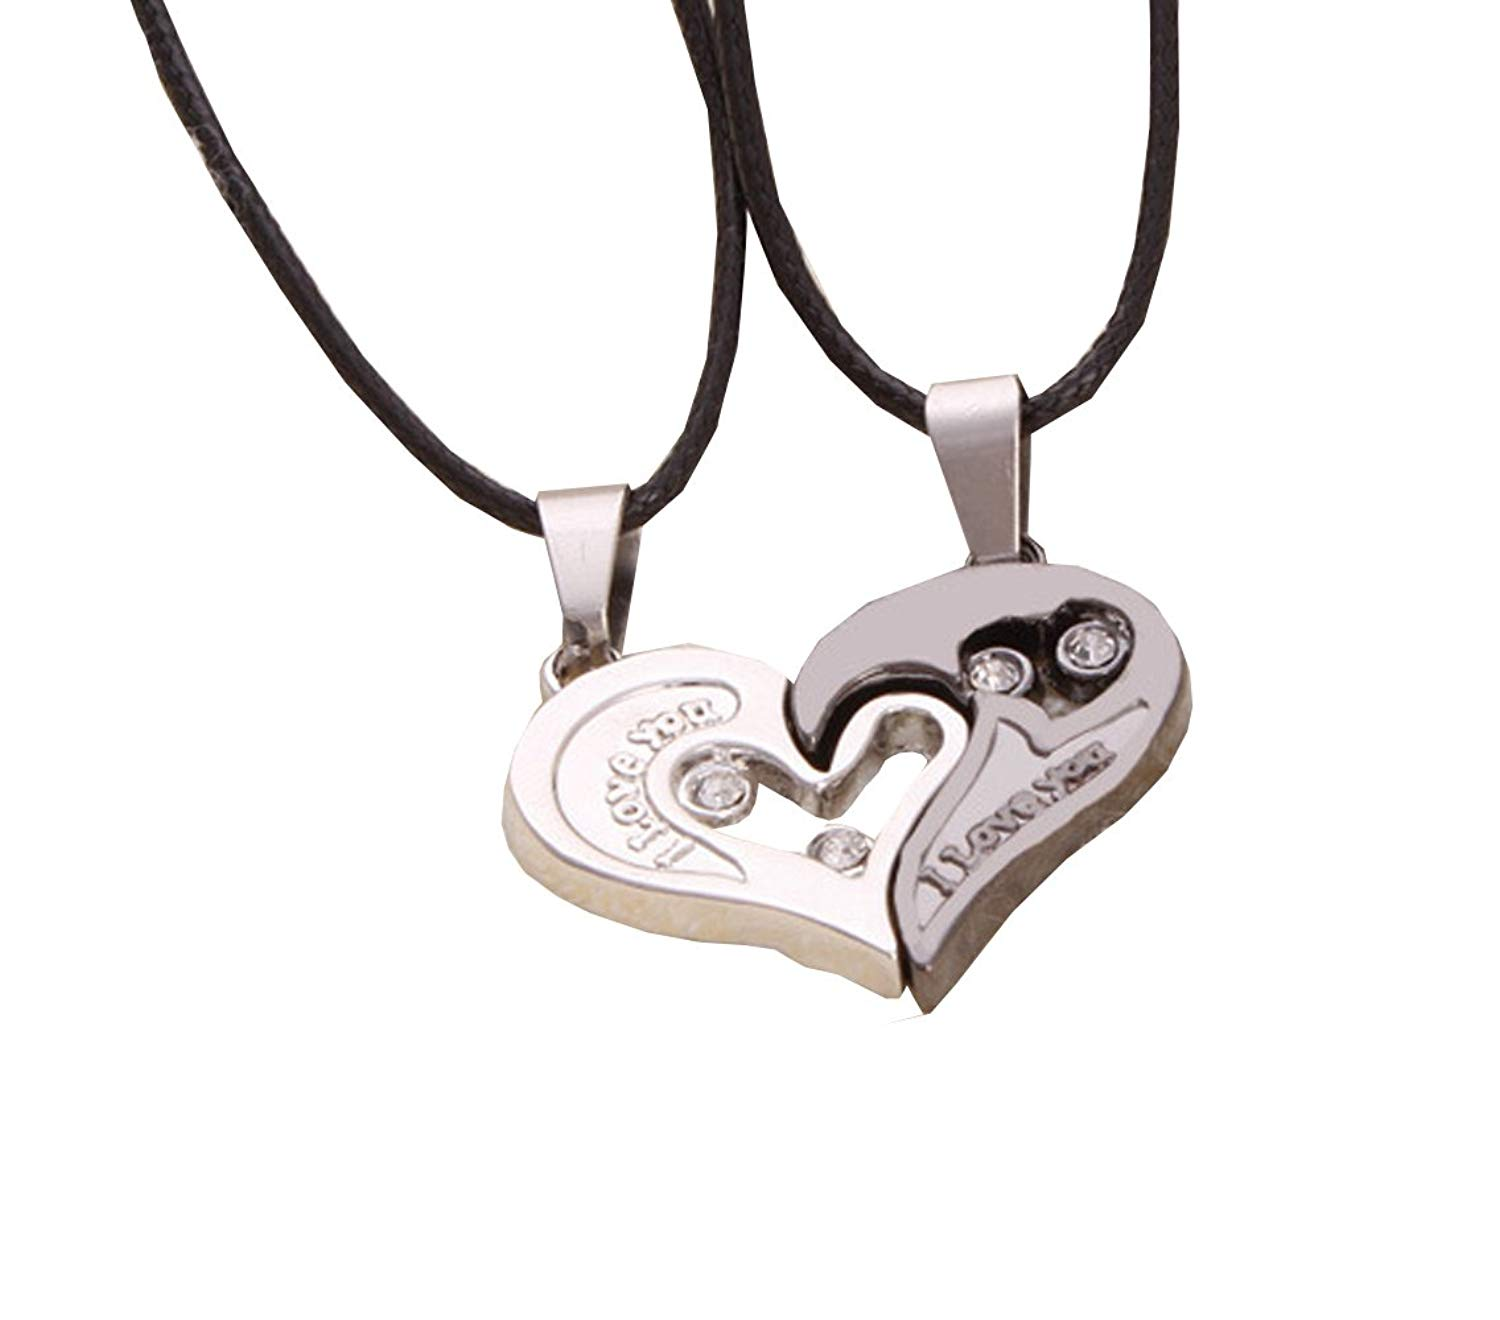 ec35ff4ad2 Get Quotations · Stainless Steel Mens Womens Couple Necklace Friendship  Love Matching Heart Pendants